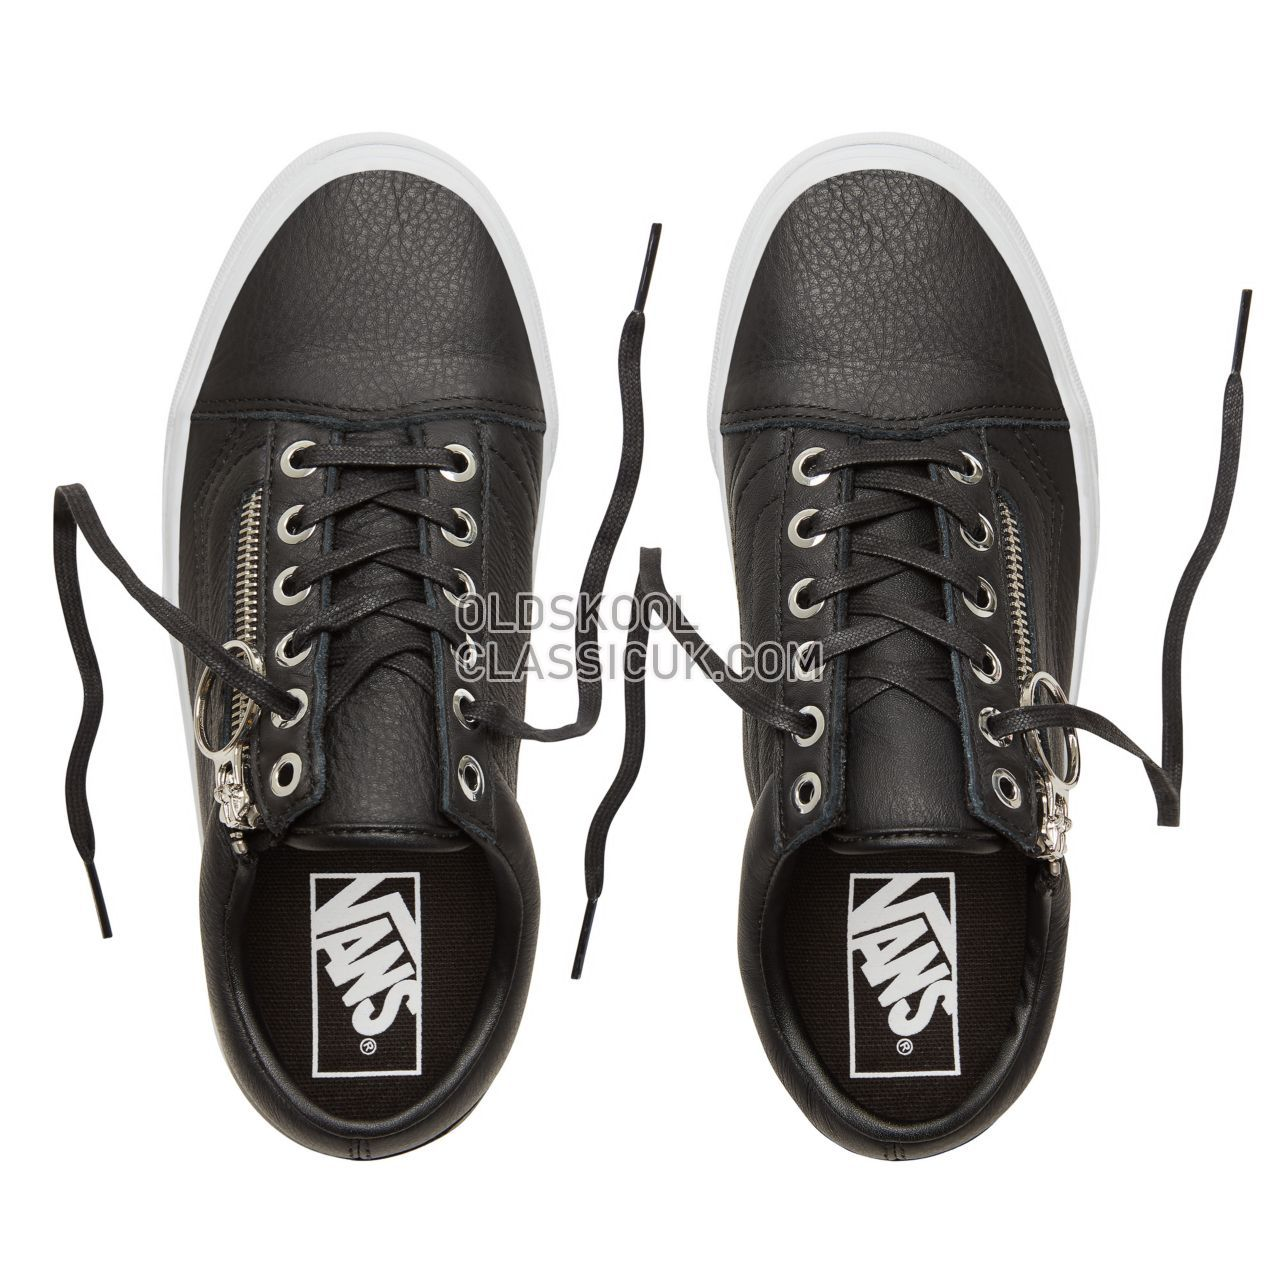 Vans Metal Hardware Old Skool Zip Sneakers Womens (Metal Hardware) Black/True White VA3493UB8 Shoes